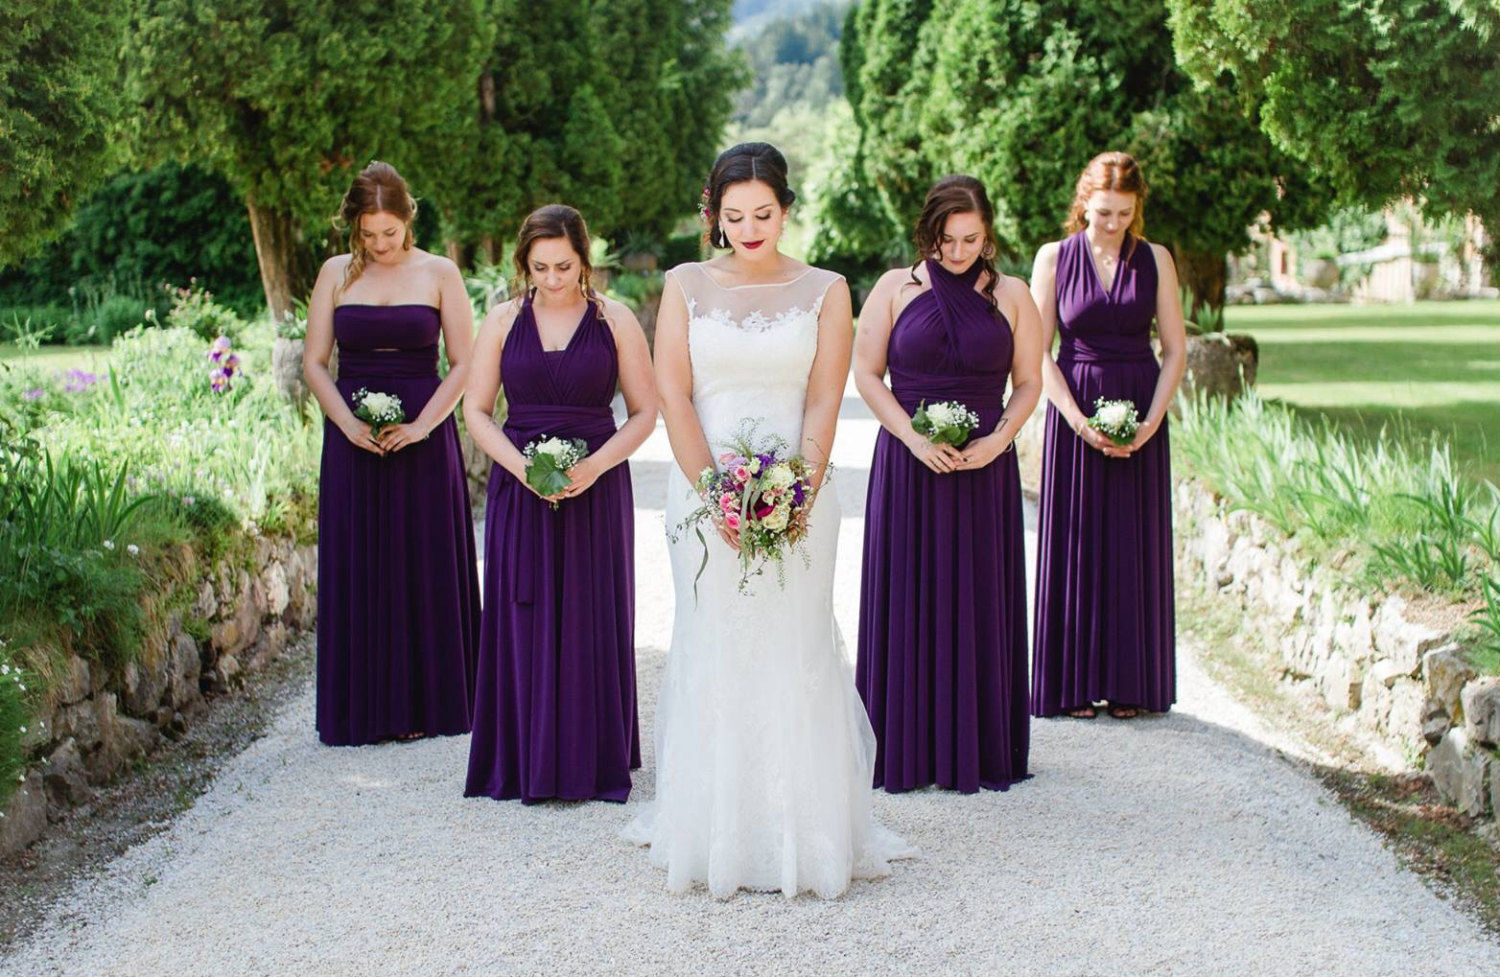 Bridesmaid dress that can be worn different ways gallery dress purple purple infinity dress floor length purple dress bridesmaid dress purple purple infinity dress floor ombrellifo Image collections